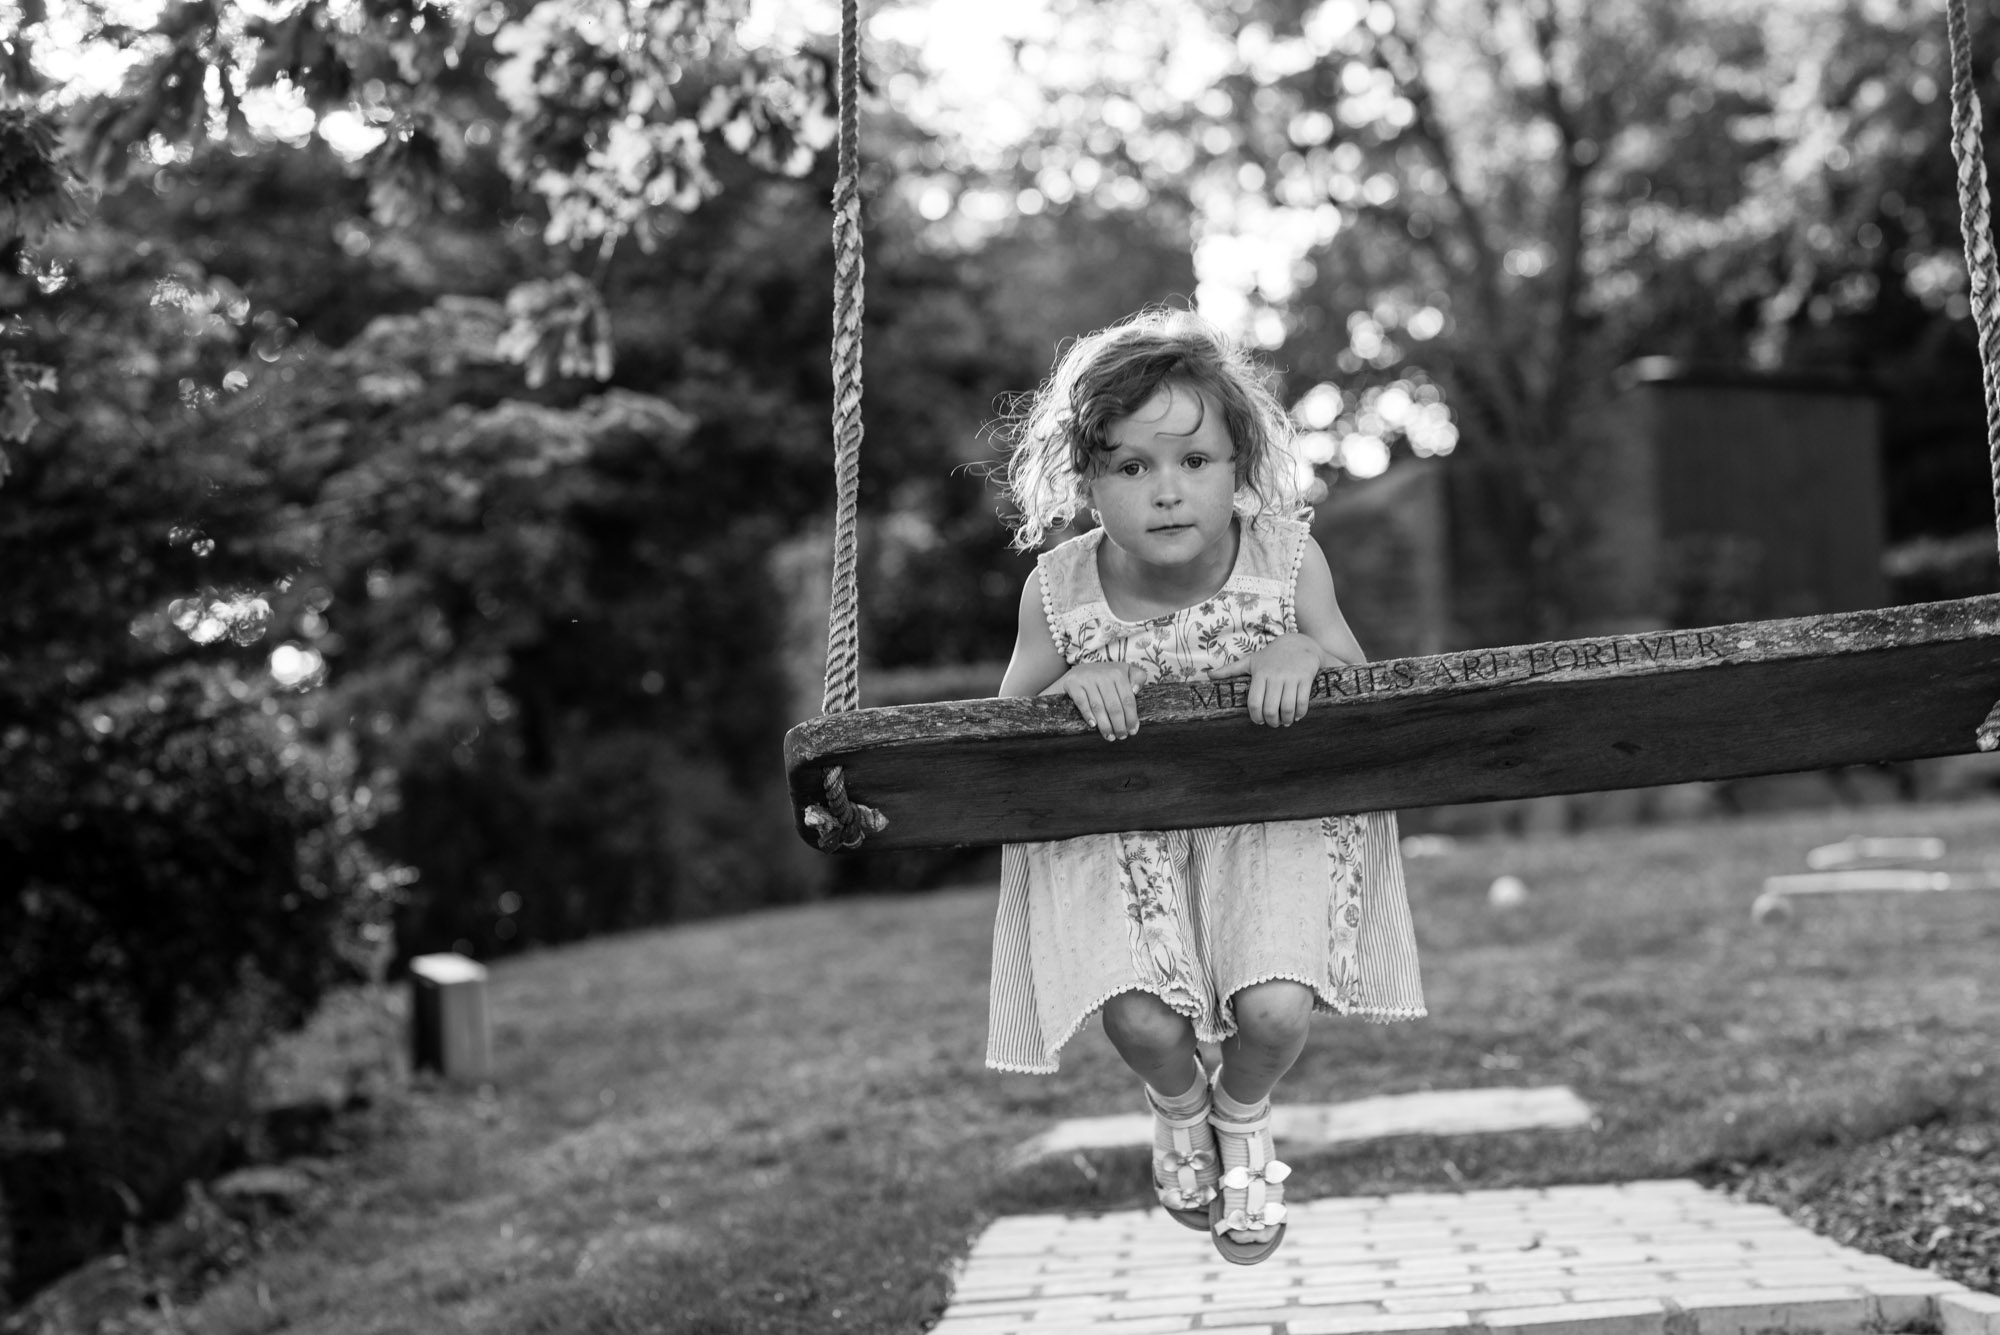 A young guest plays on the swing